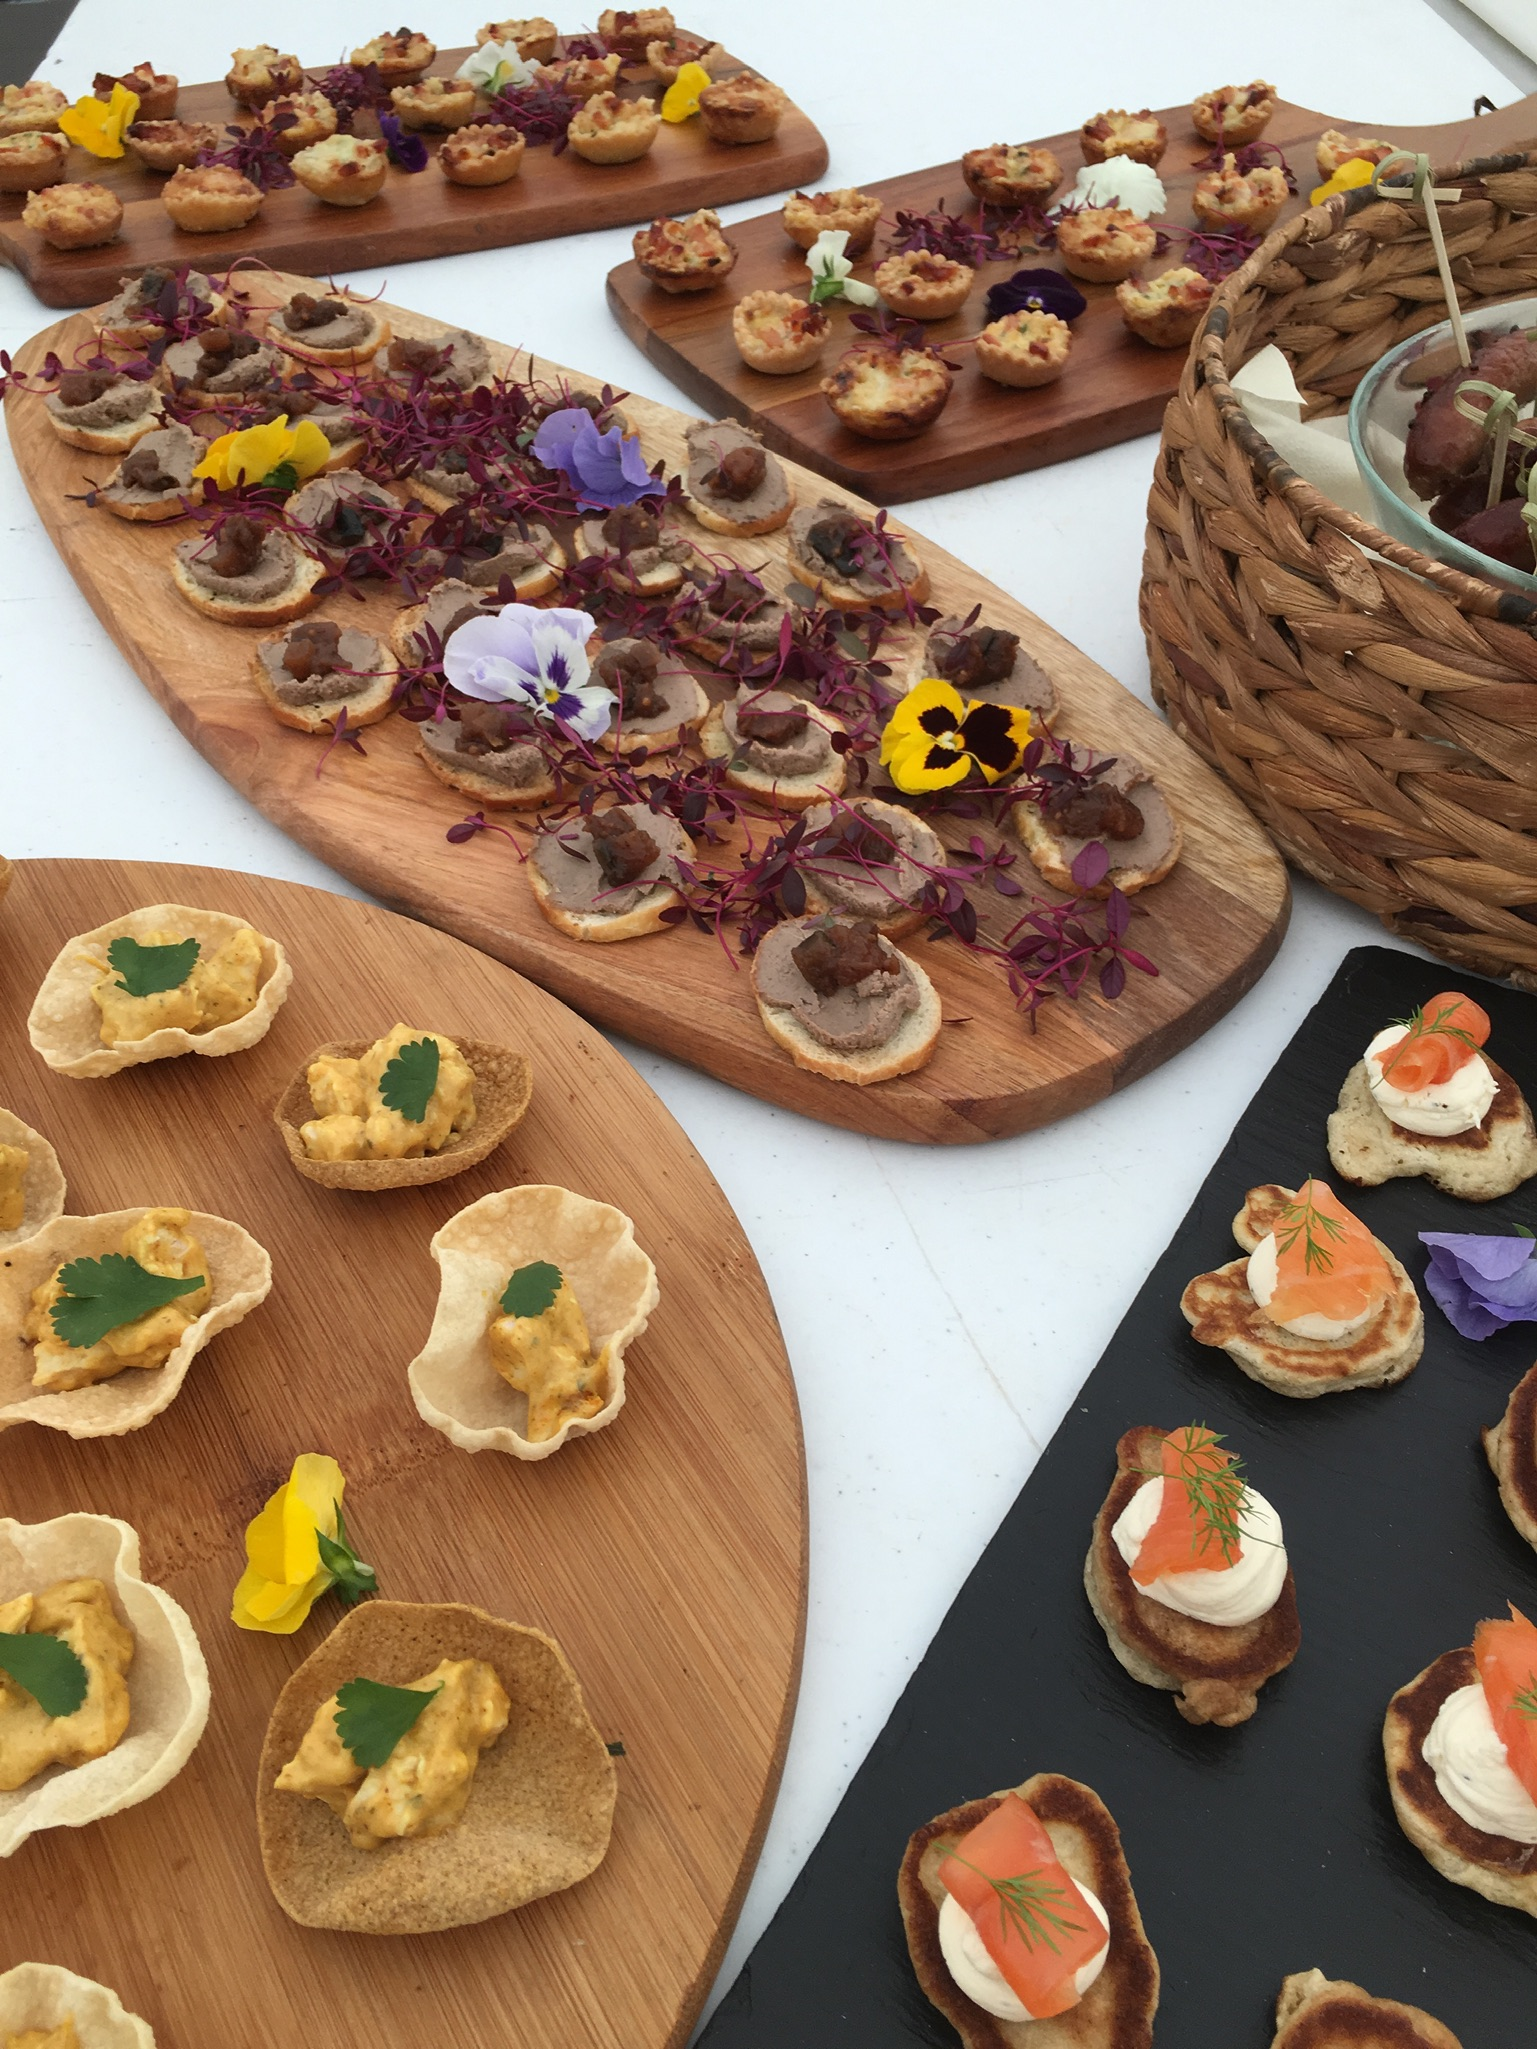 Exeter Corporate Caterers